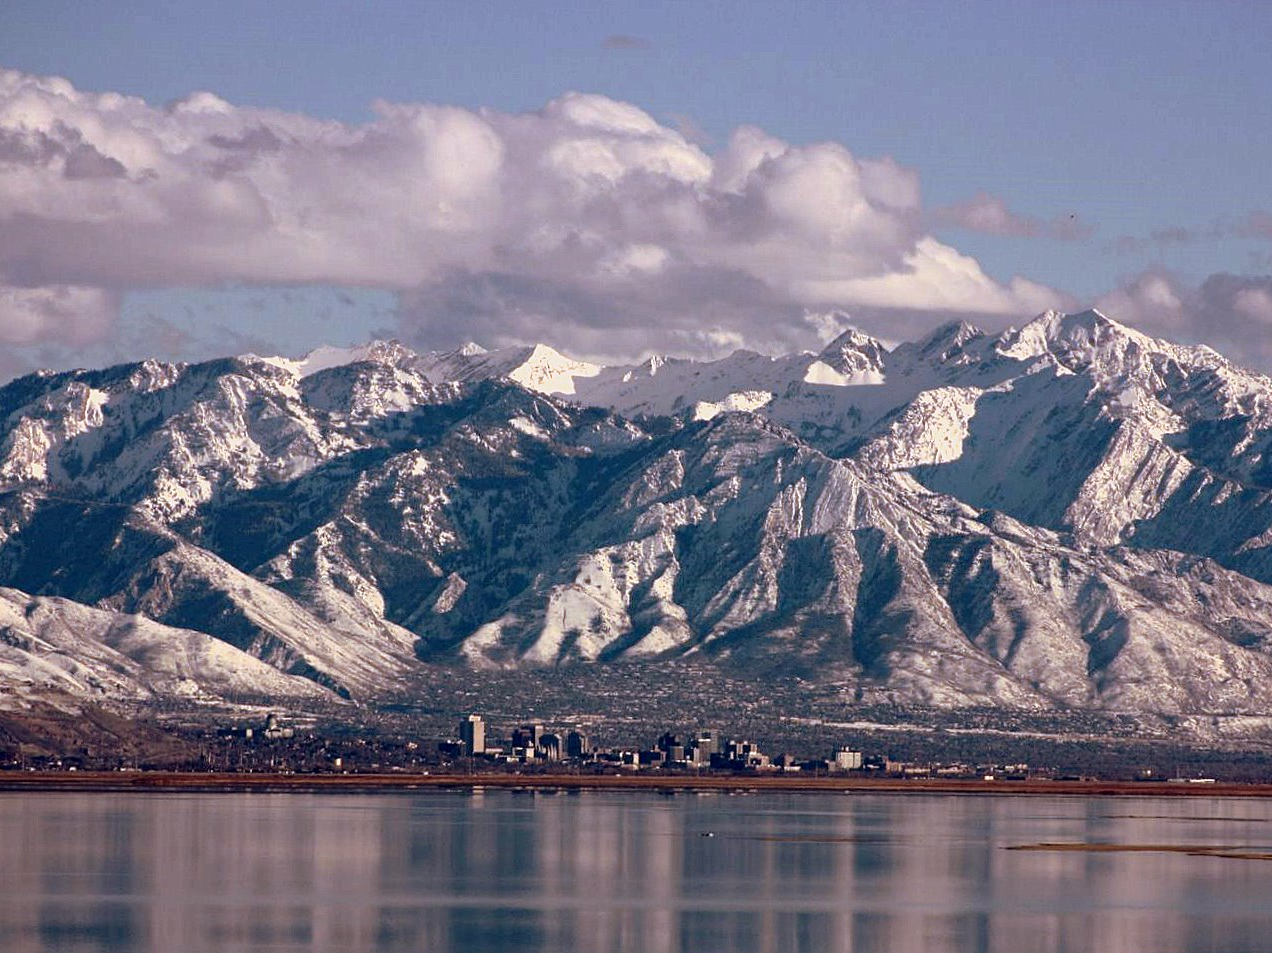 A Different View Salt Lake City Photo Taken From South East Shore Of Antelope Island In The Gr Salt Lake City Utah Mountains Utah Lakes Salt Lake City Utah